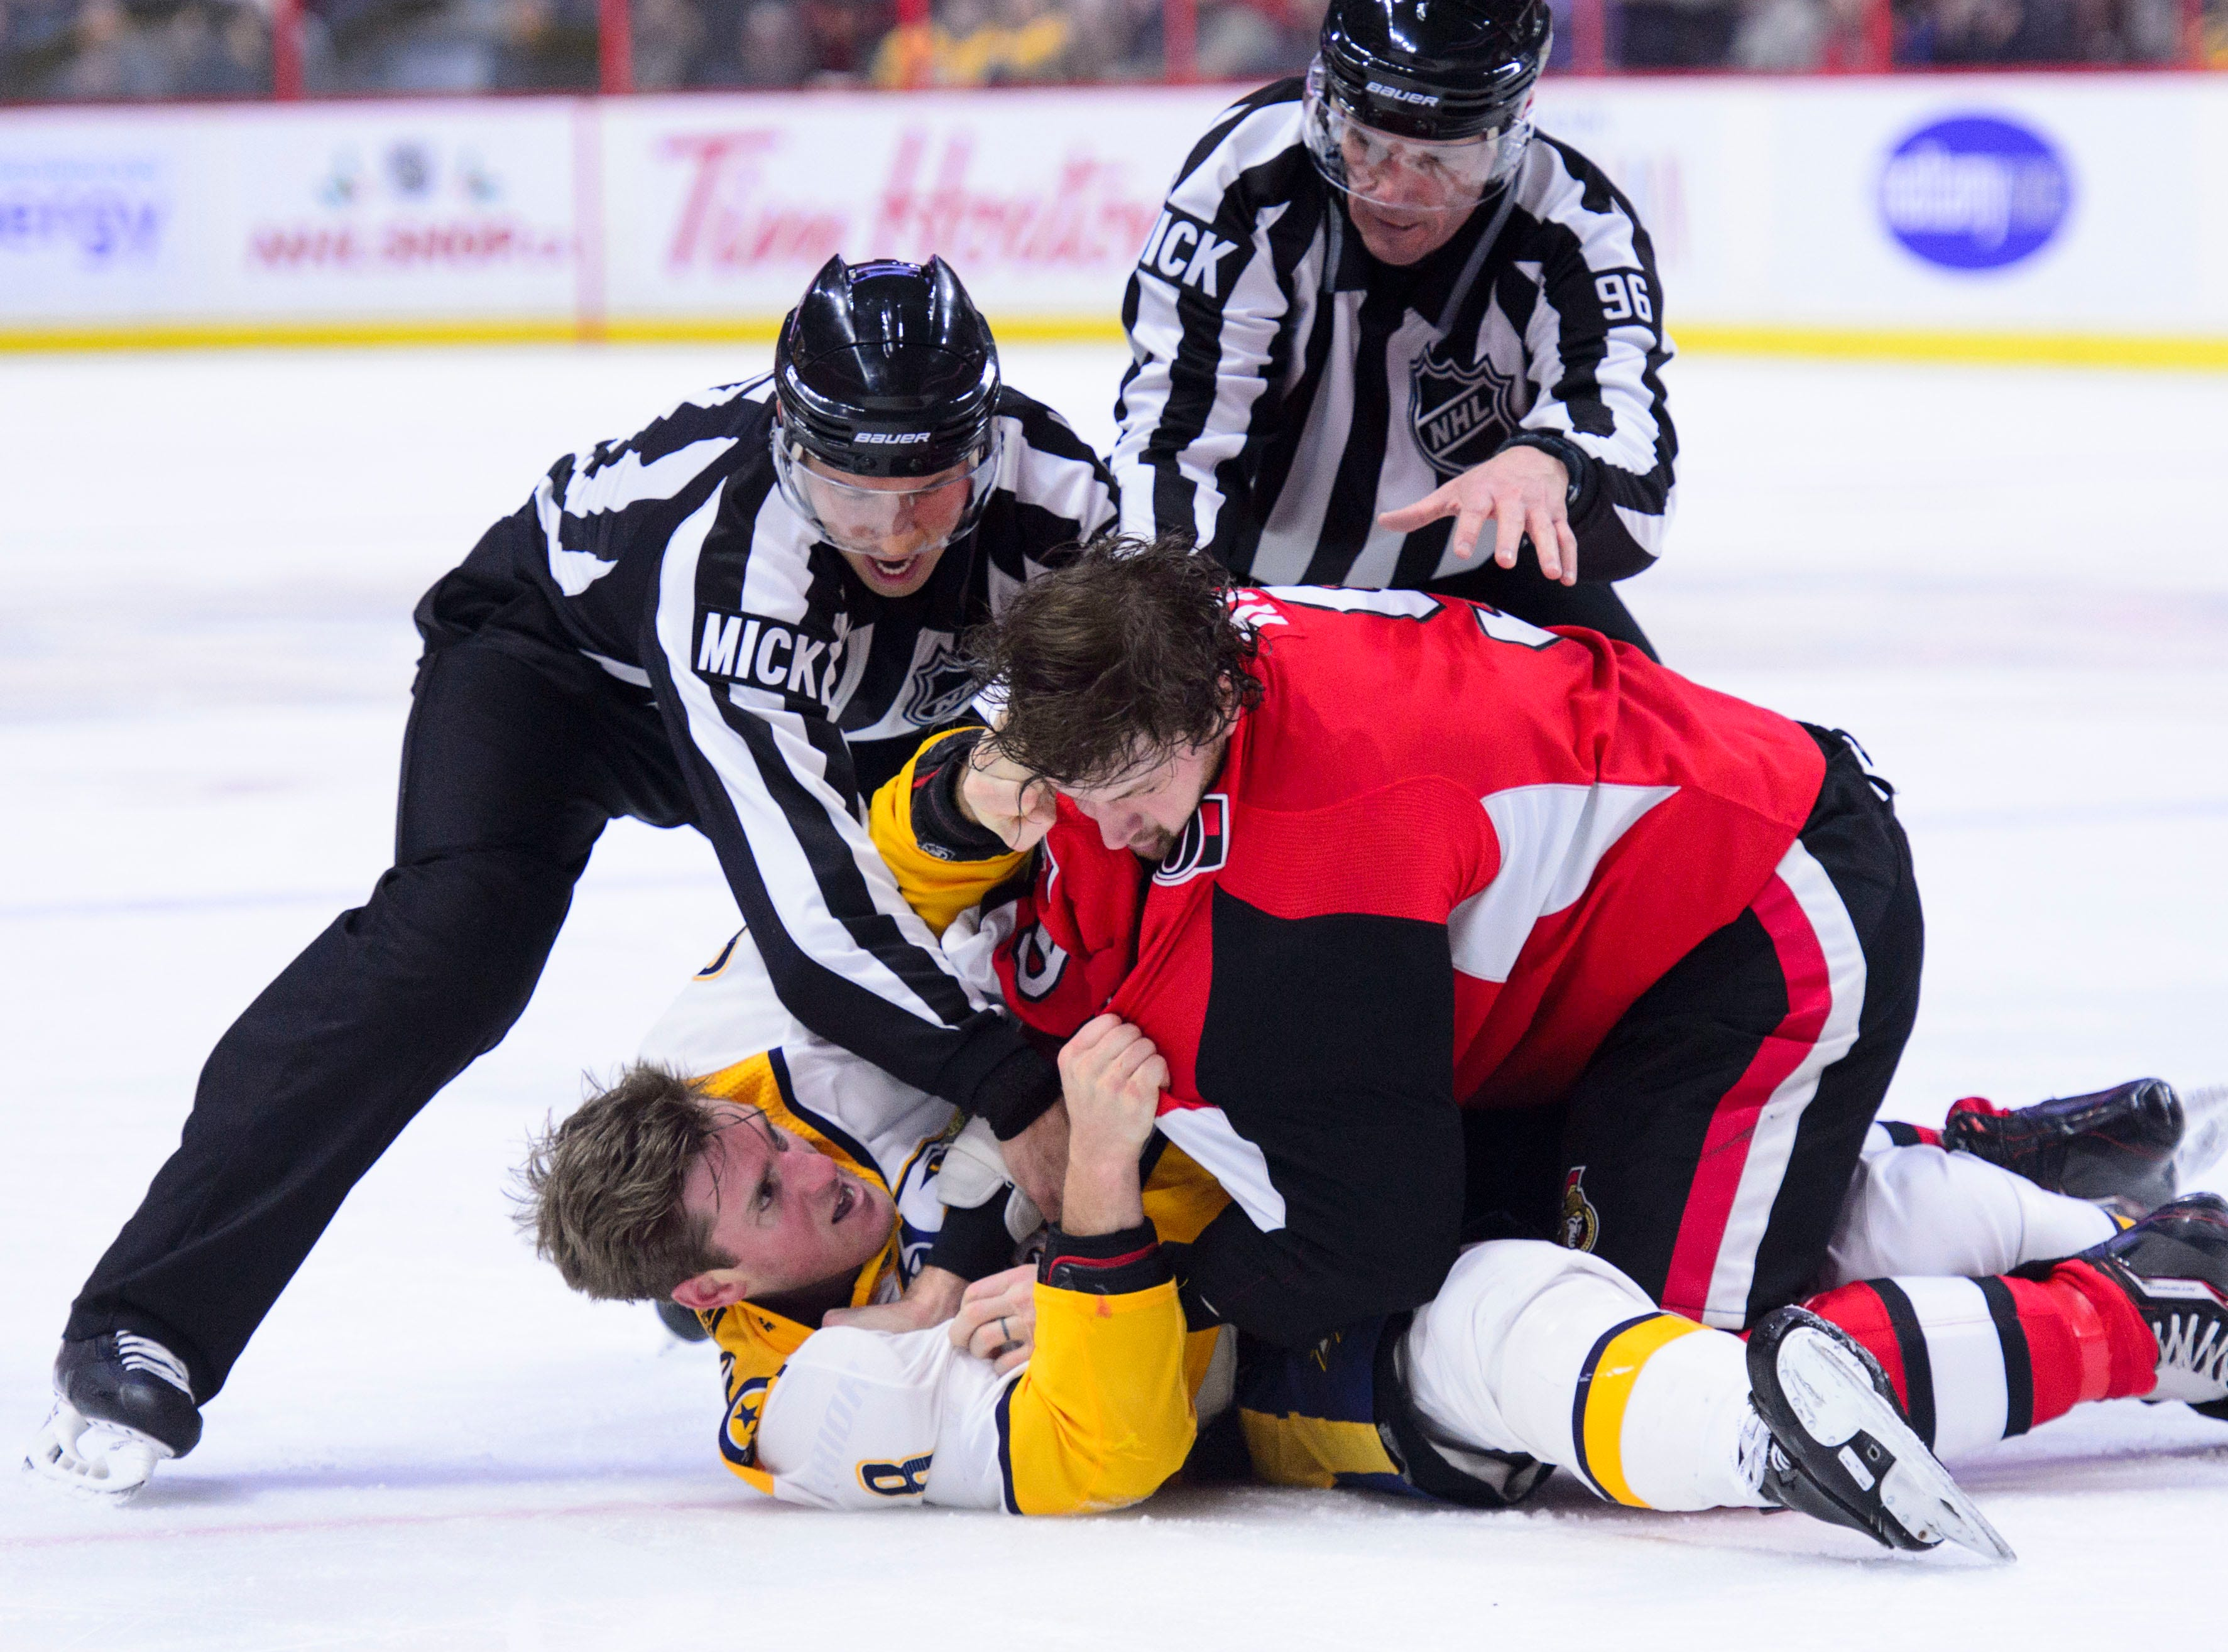 Dec. 17: Ottawa Senators' Bobby Ryan vs. Nashville Predators' Kyle Turris.